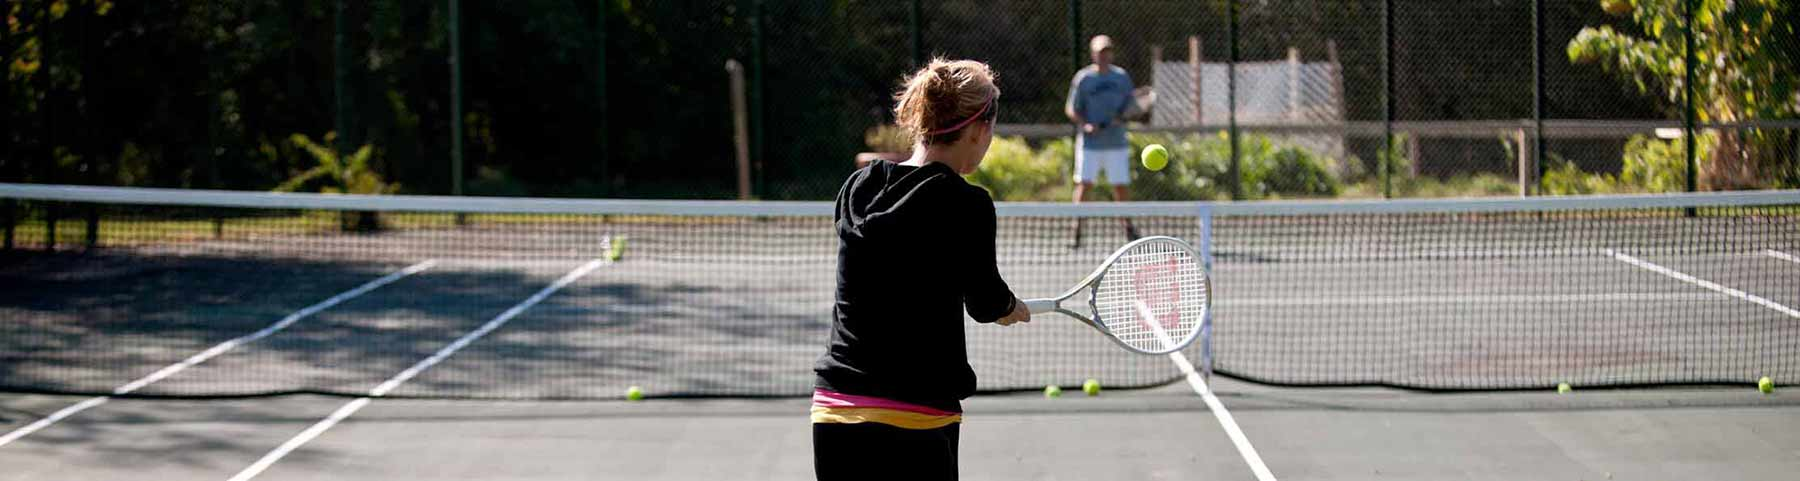 Tennis in Green Lake